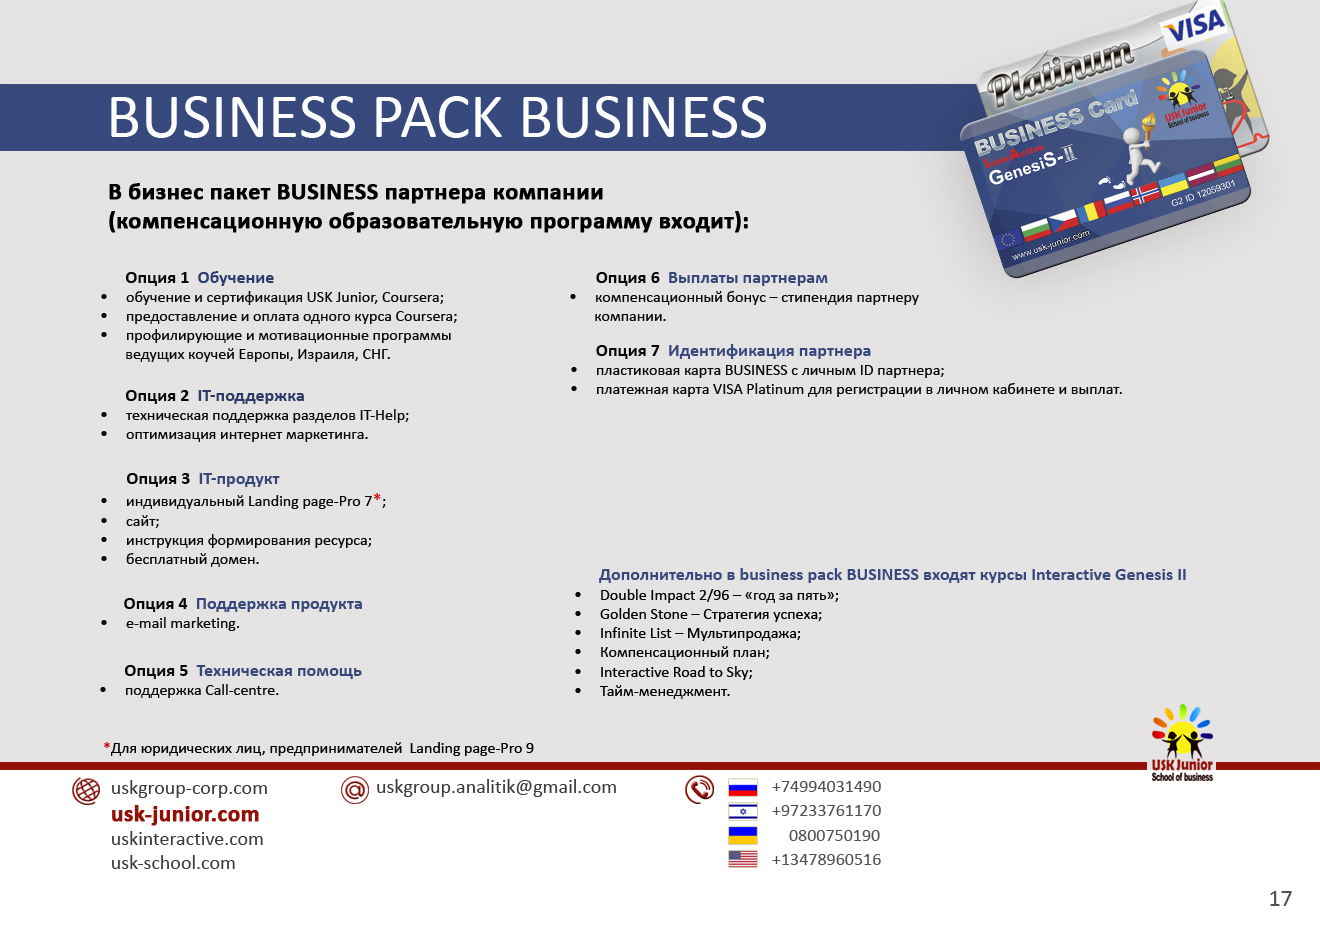 Business pack Business